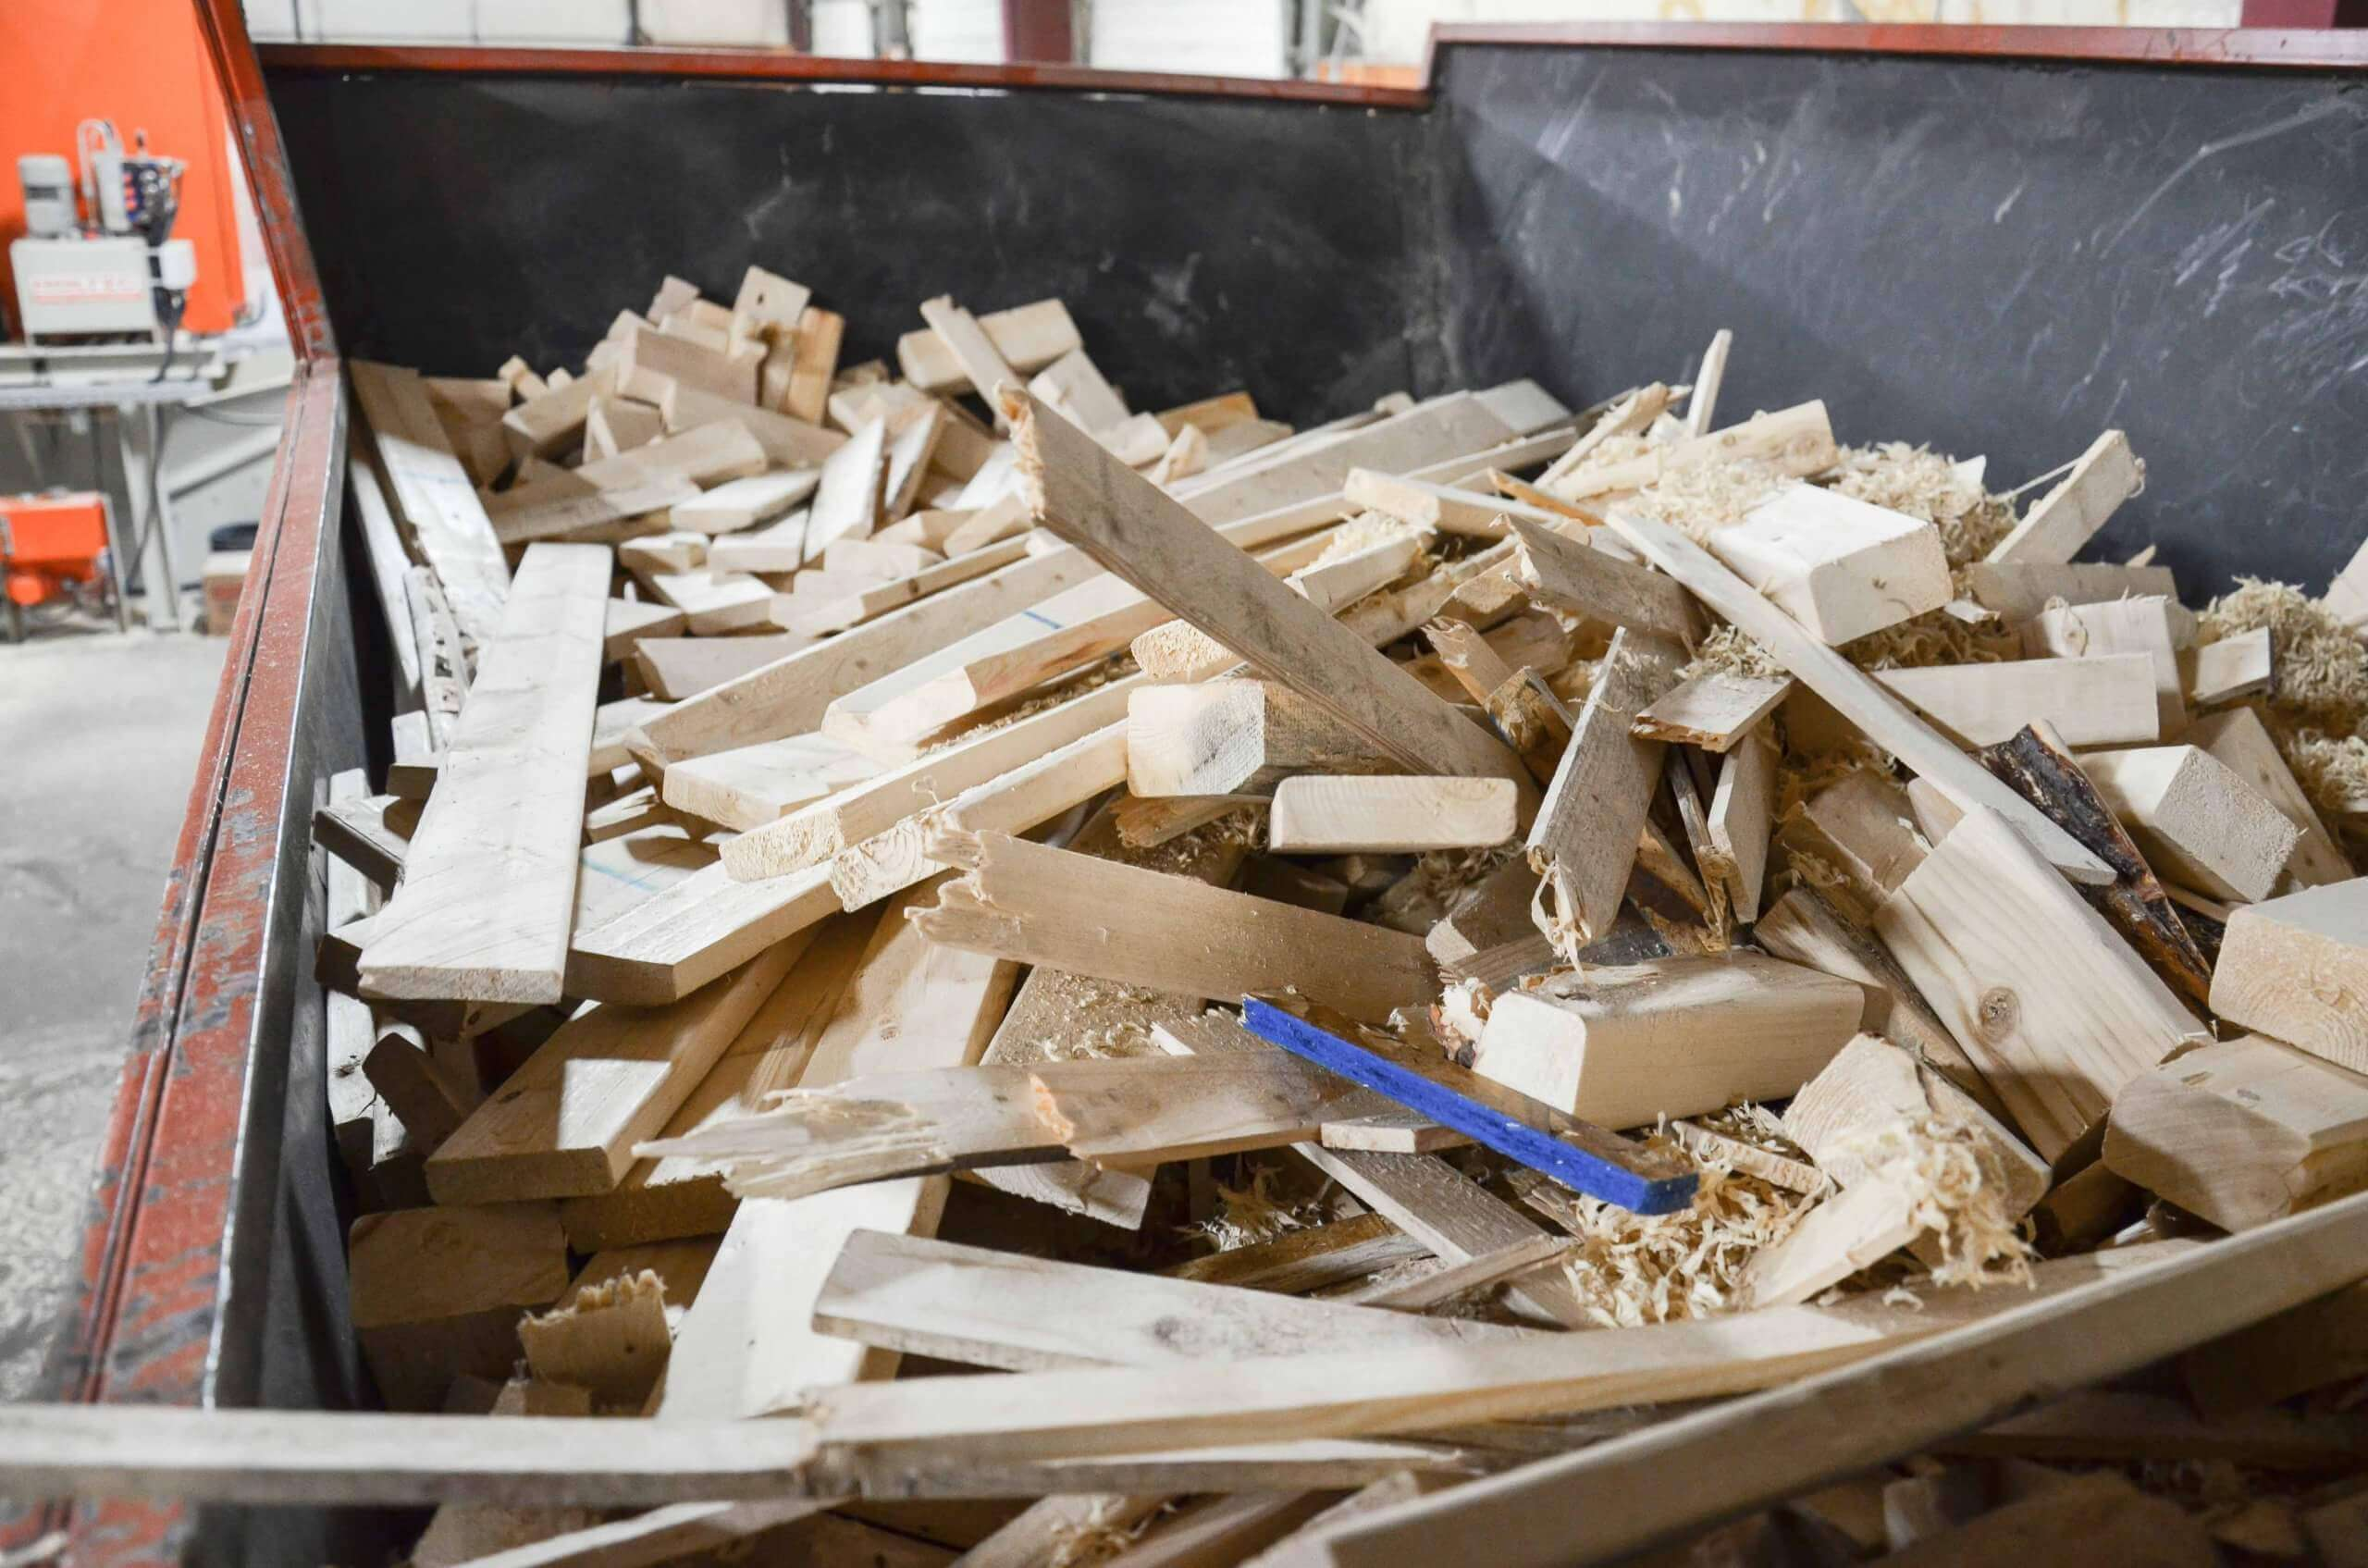 Splinters and wood sections in the hopper of the WEIMA shredder